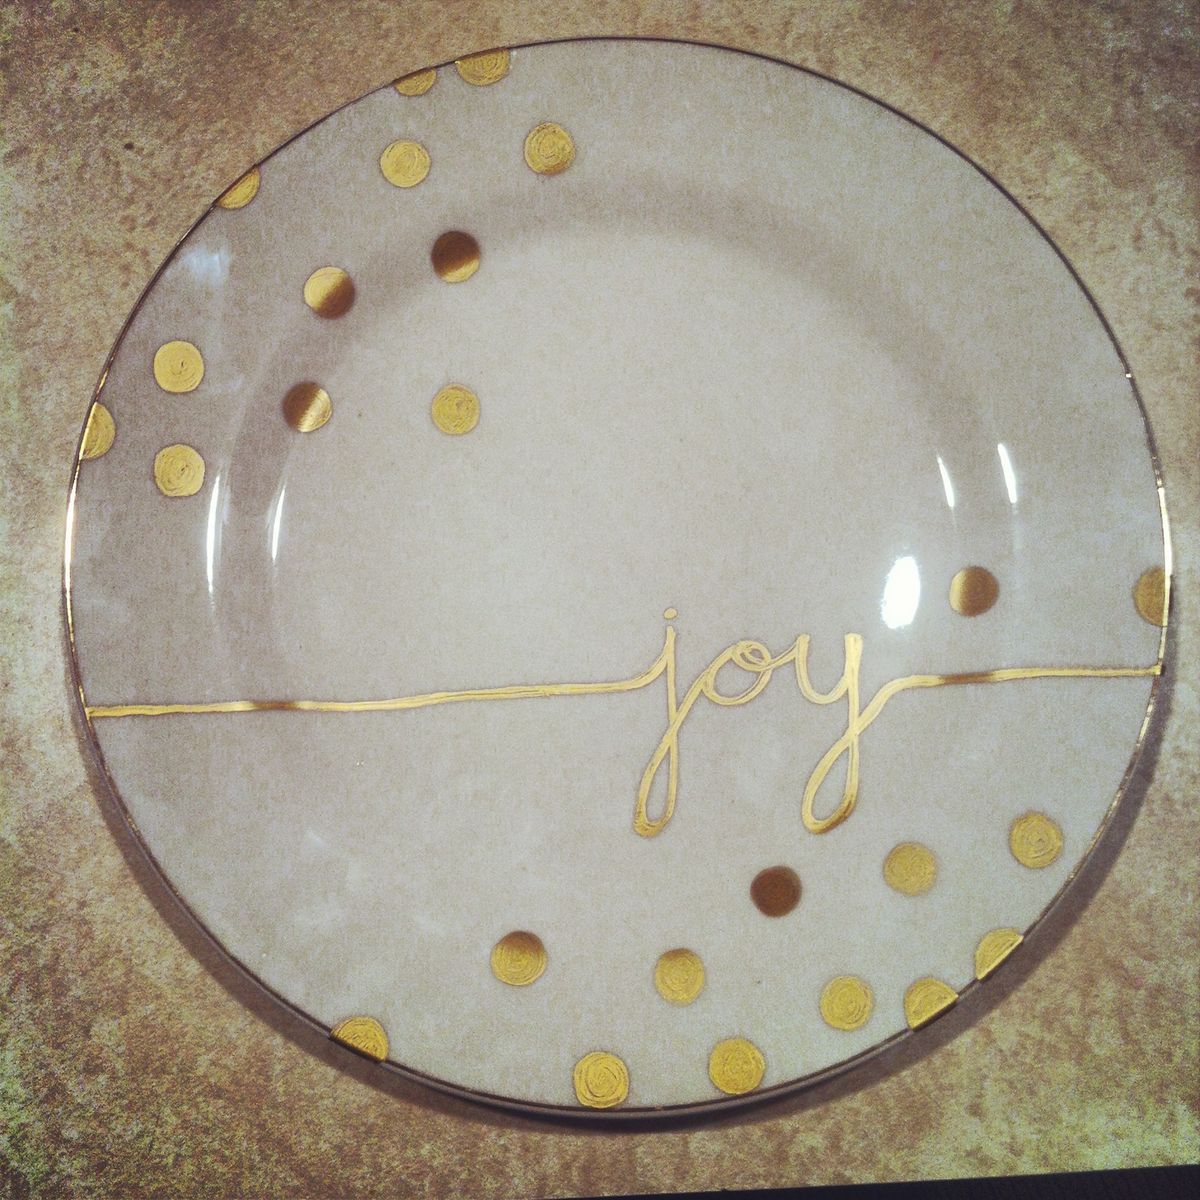 Kate Spade-inspired plate decorated with oil-based Sharpie & Kate Spade-inspired plate decorated with oil-based Sharpie | Crafty ...